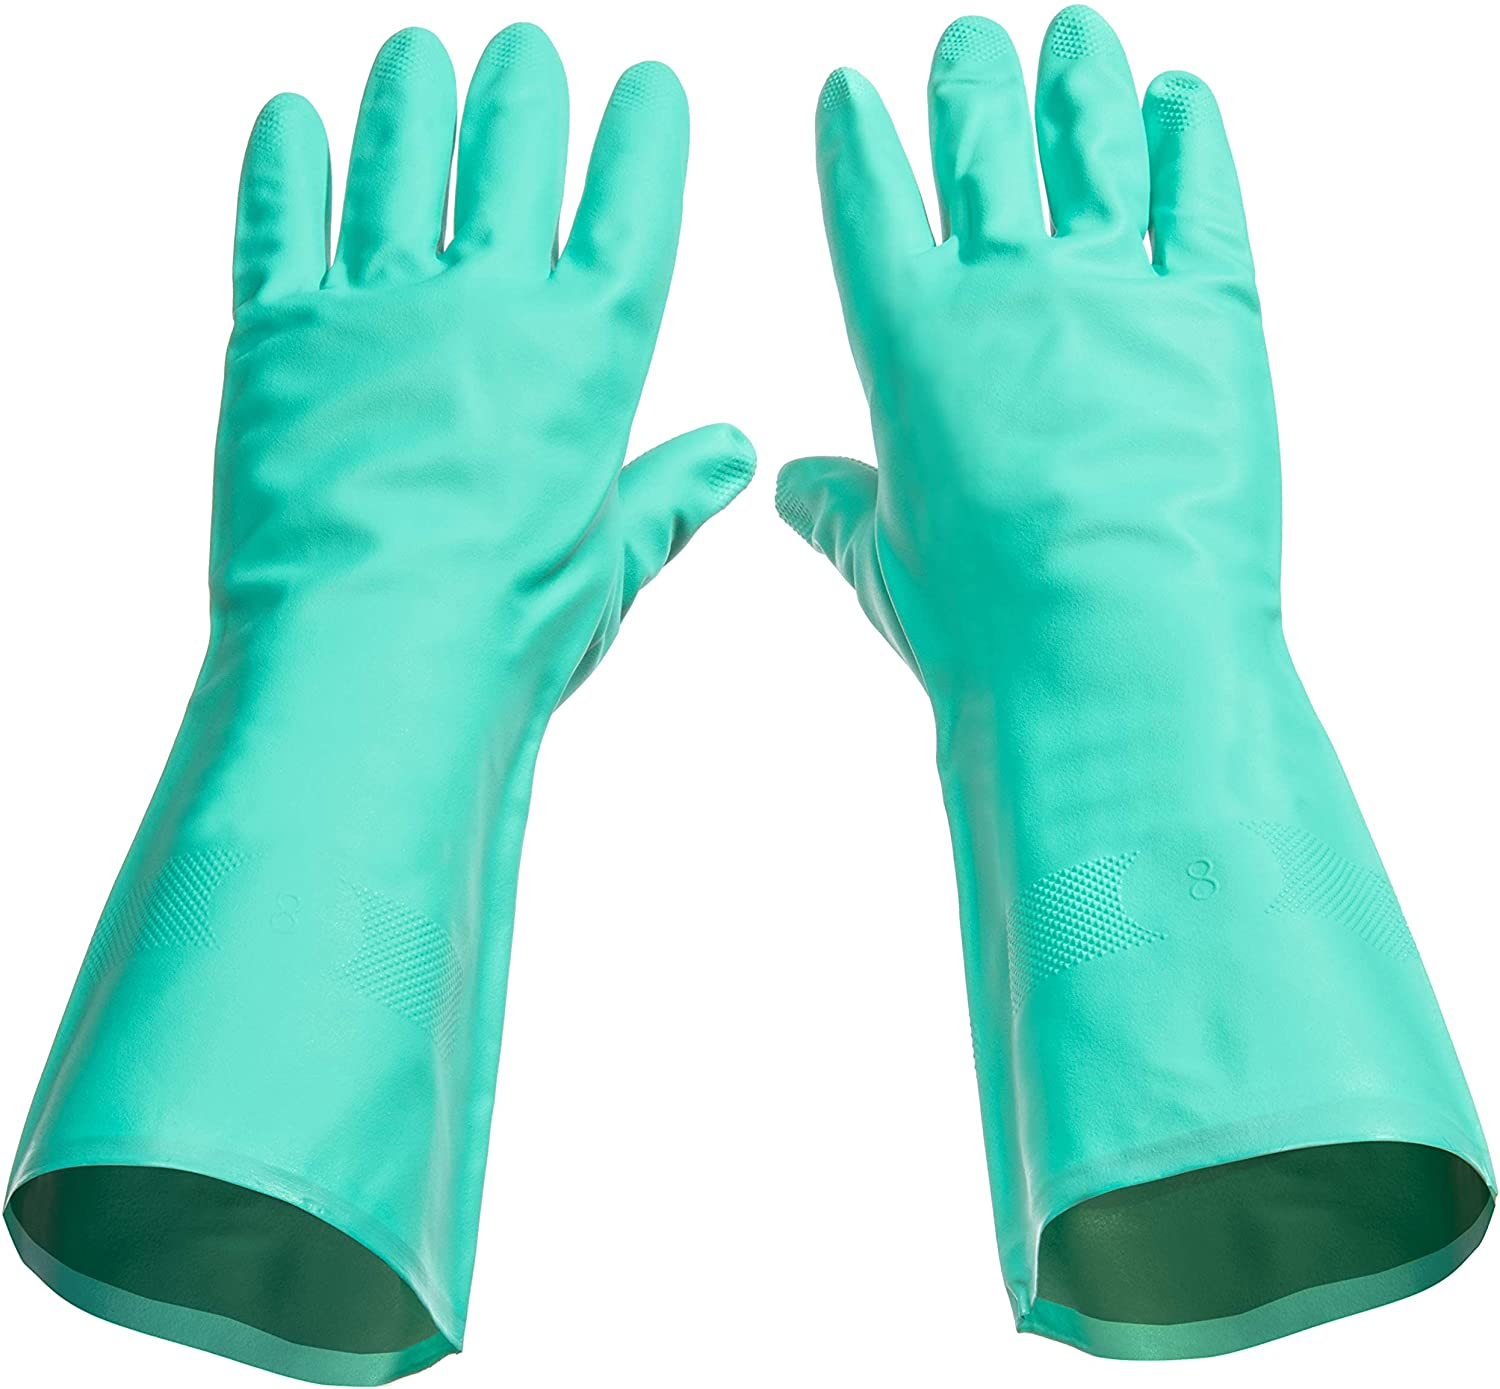 Tusko Products Best Nitrile Rubber Cleaning, Household, Dishwashing Gloves, Latex Free, Vinyl Free, Reusable not Disposable, Large L (1 Pair) : Health & Household